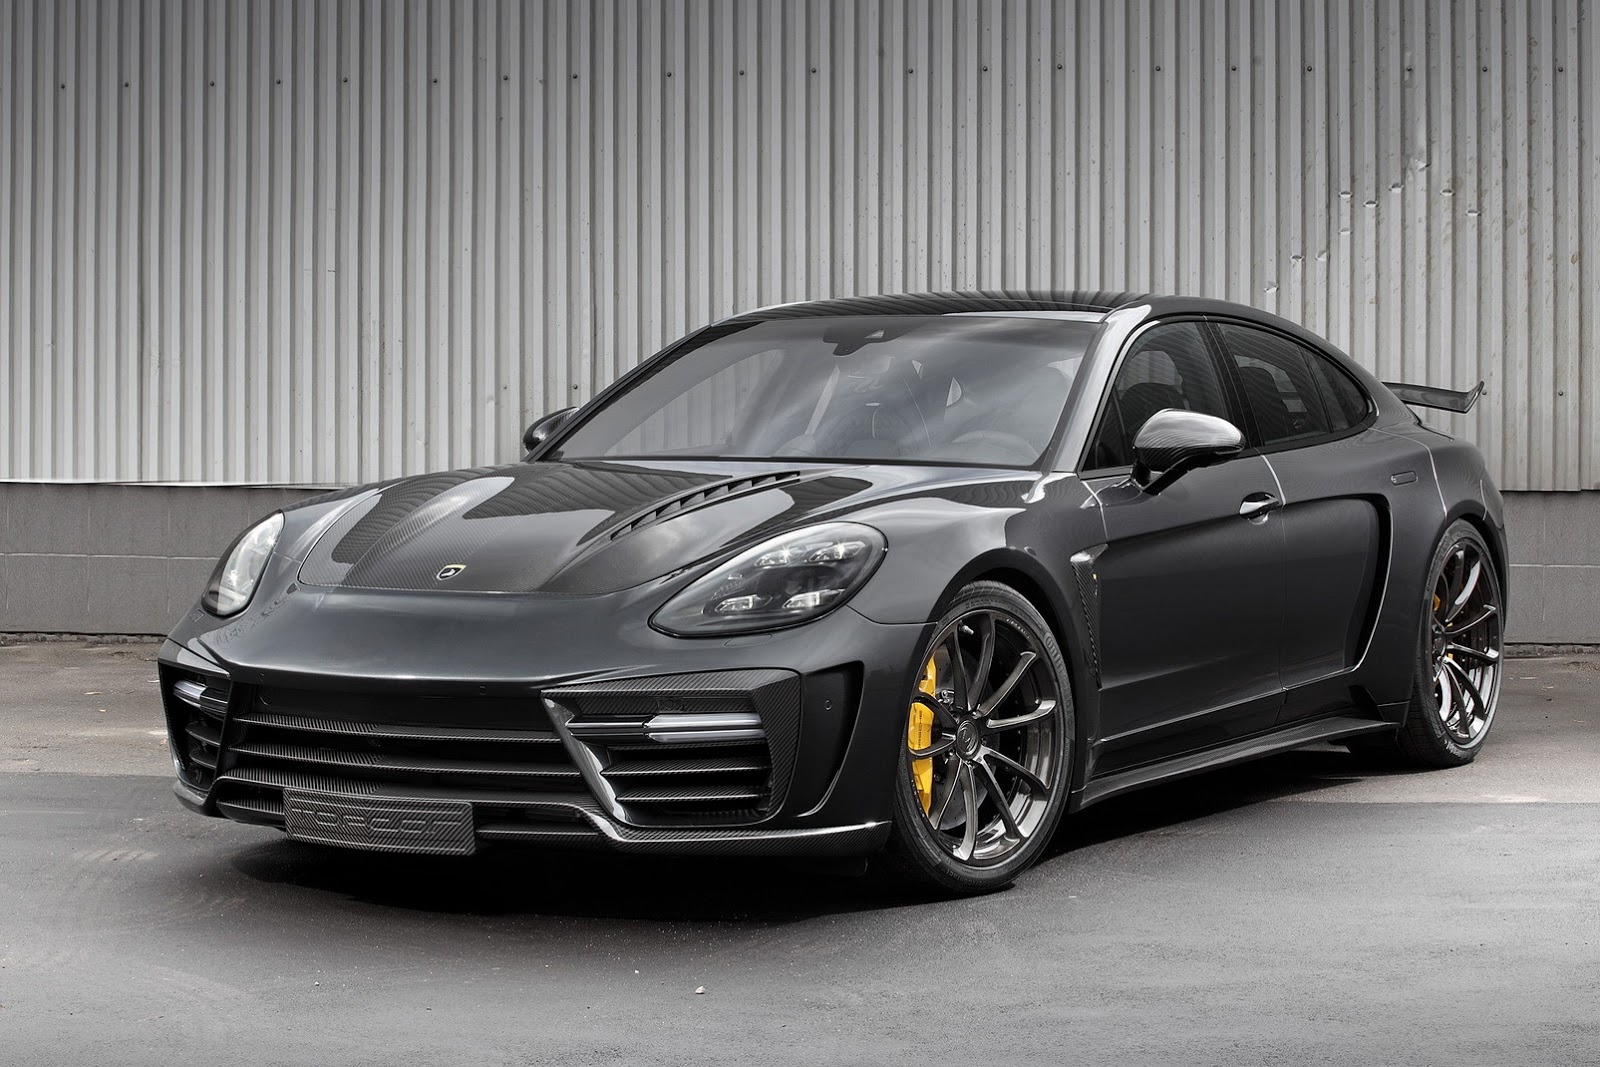 new porsche panamera turbo topcar tuning has custom. Black Bedroom Furniture Sets. Home Design Ideas